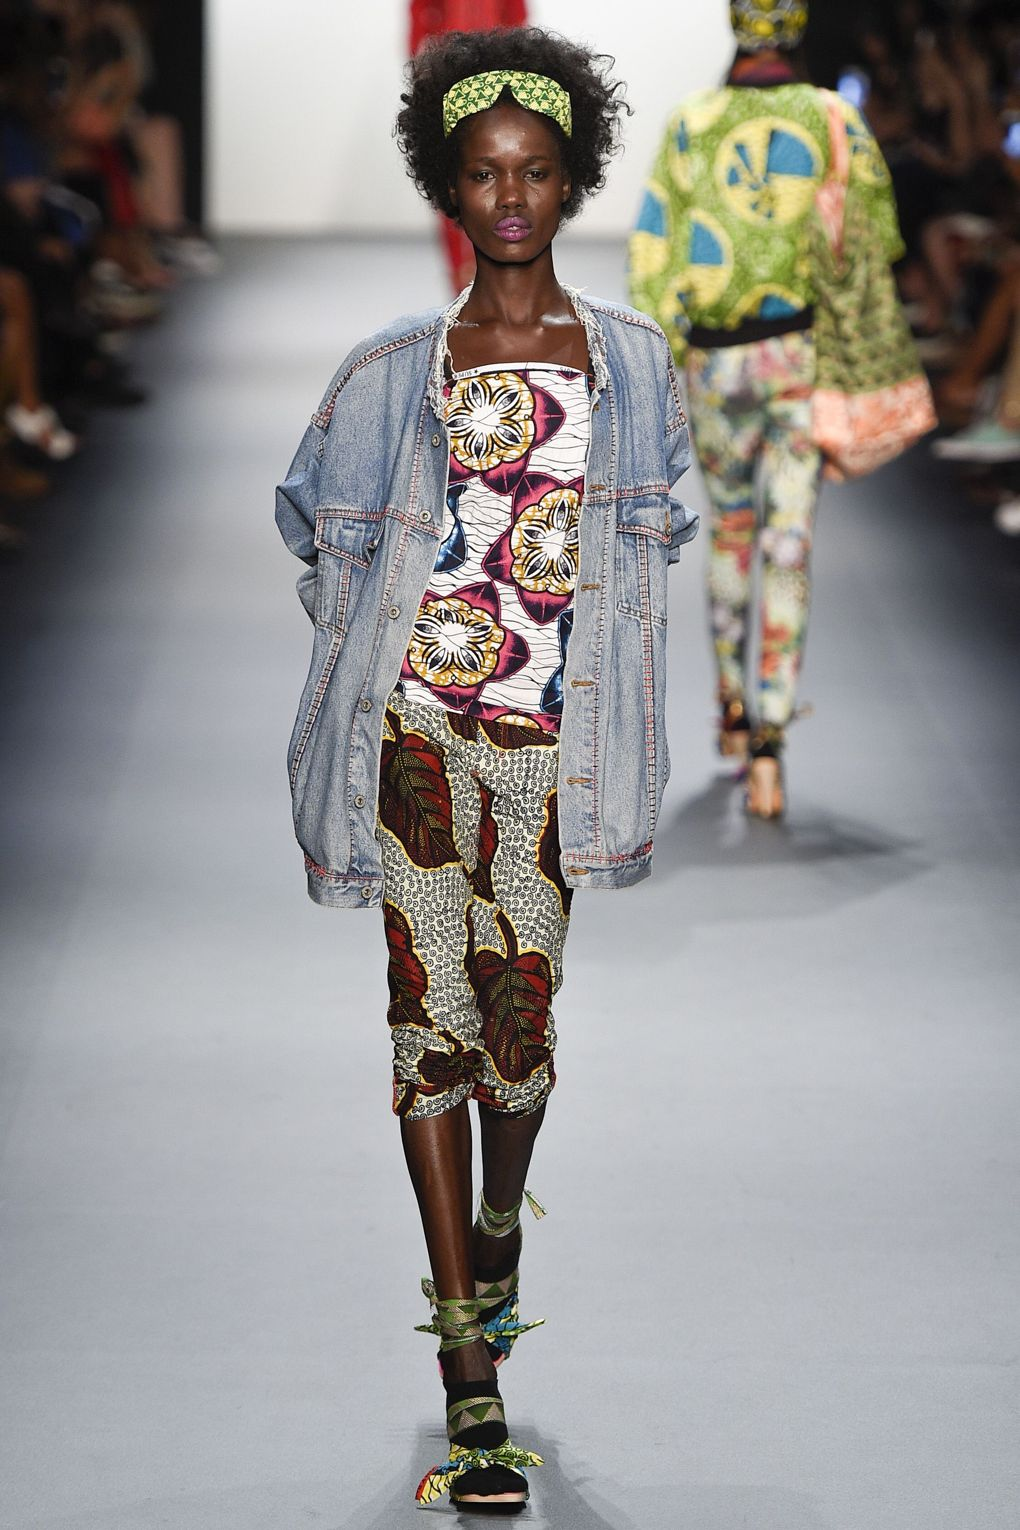 fashion-week-xuly-be%cc%88t-xuly-be%cc%88t-sprigsummer-2016-ready-to-wear-collection-7